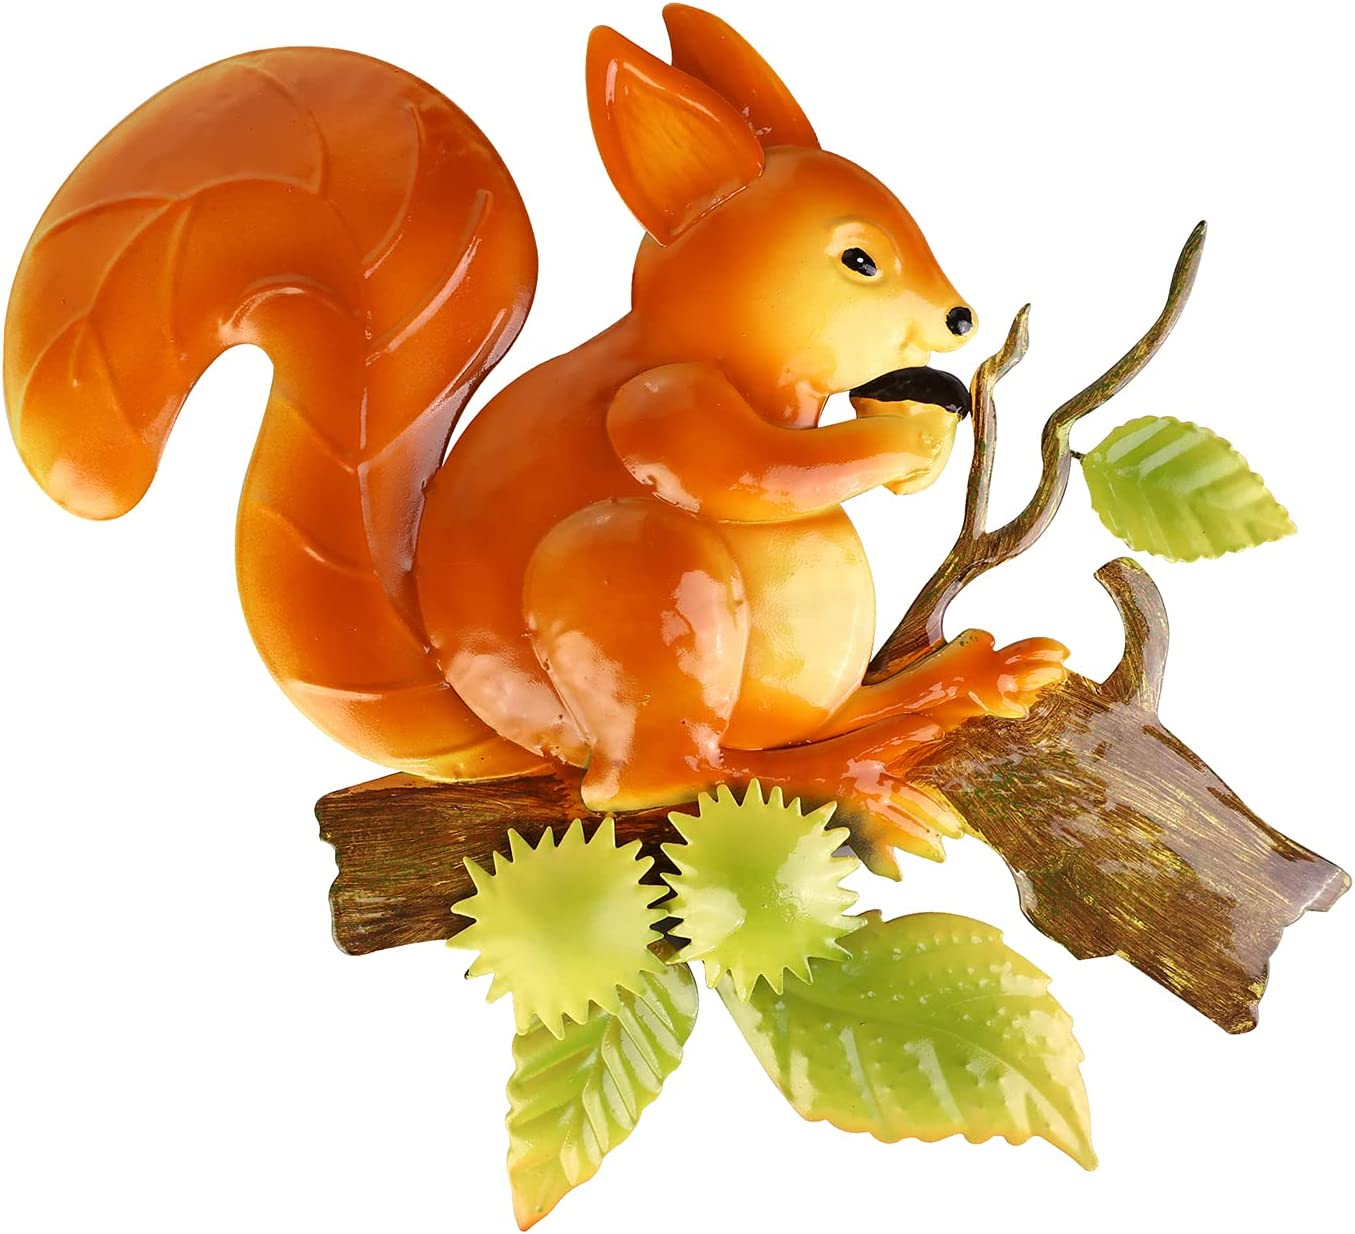 Scwhousi Metal Squirrel Wall Decor Outdoor Garden Fence Art,Hanging Decorations for Living Room